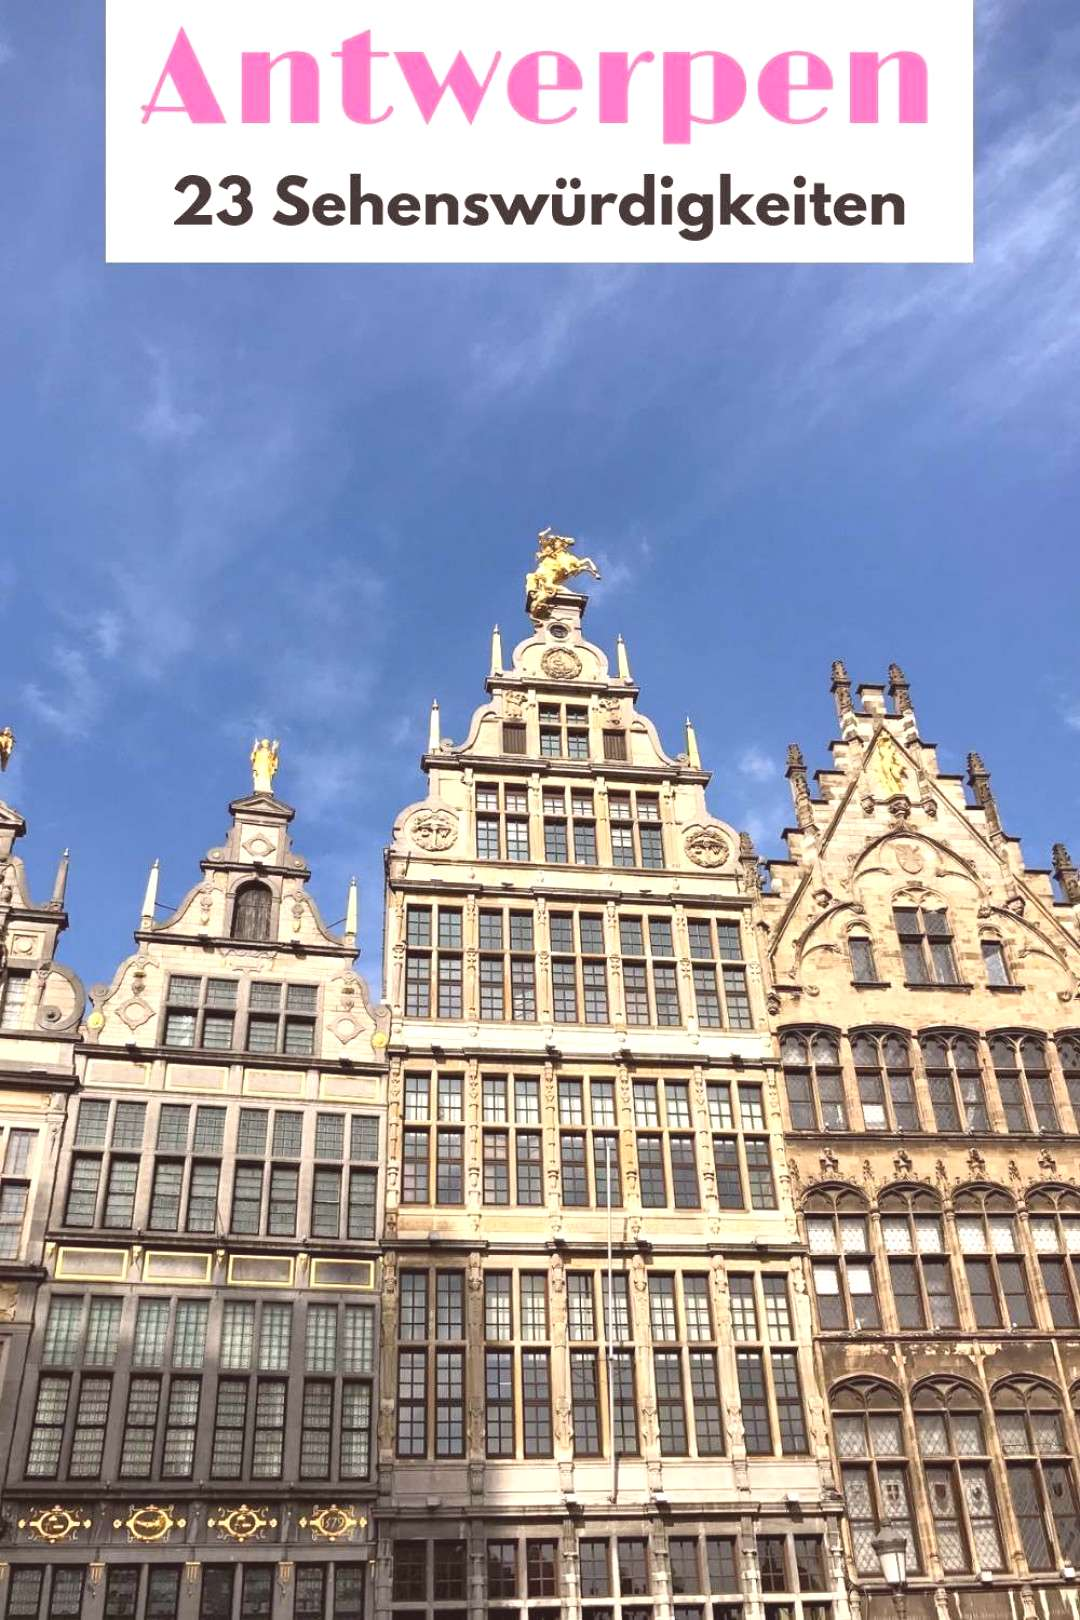 Antwerp tips: 23 sights, shops & restaurants - travel blog travel on toast - -